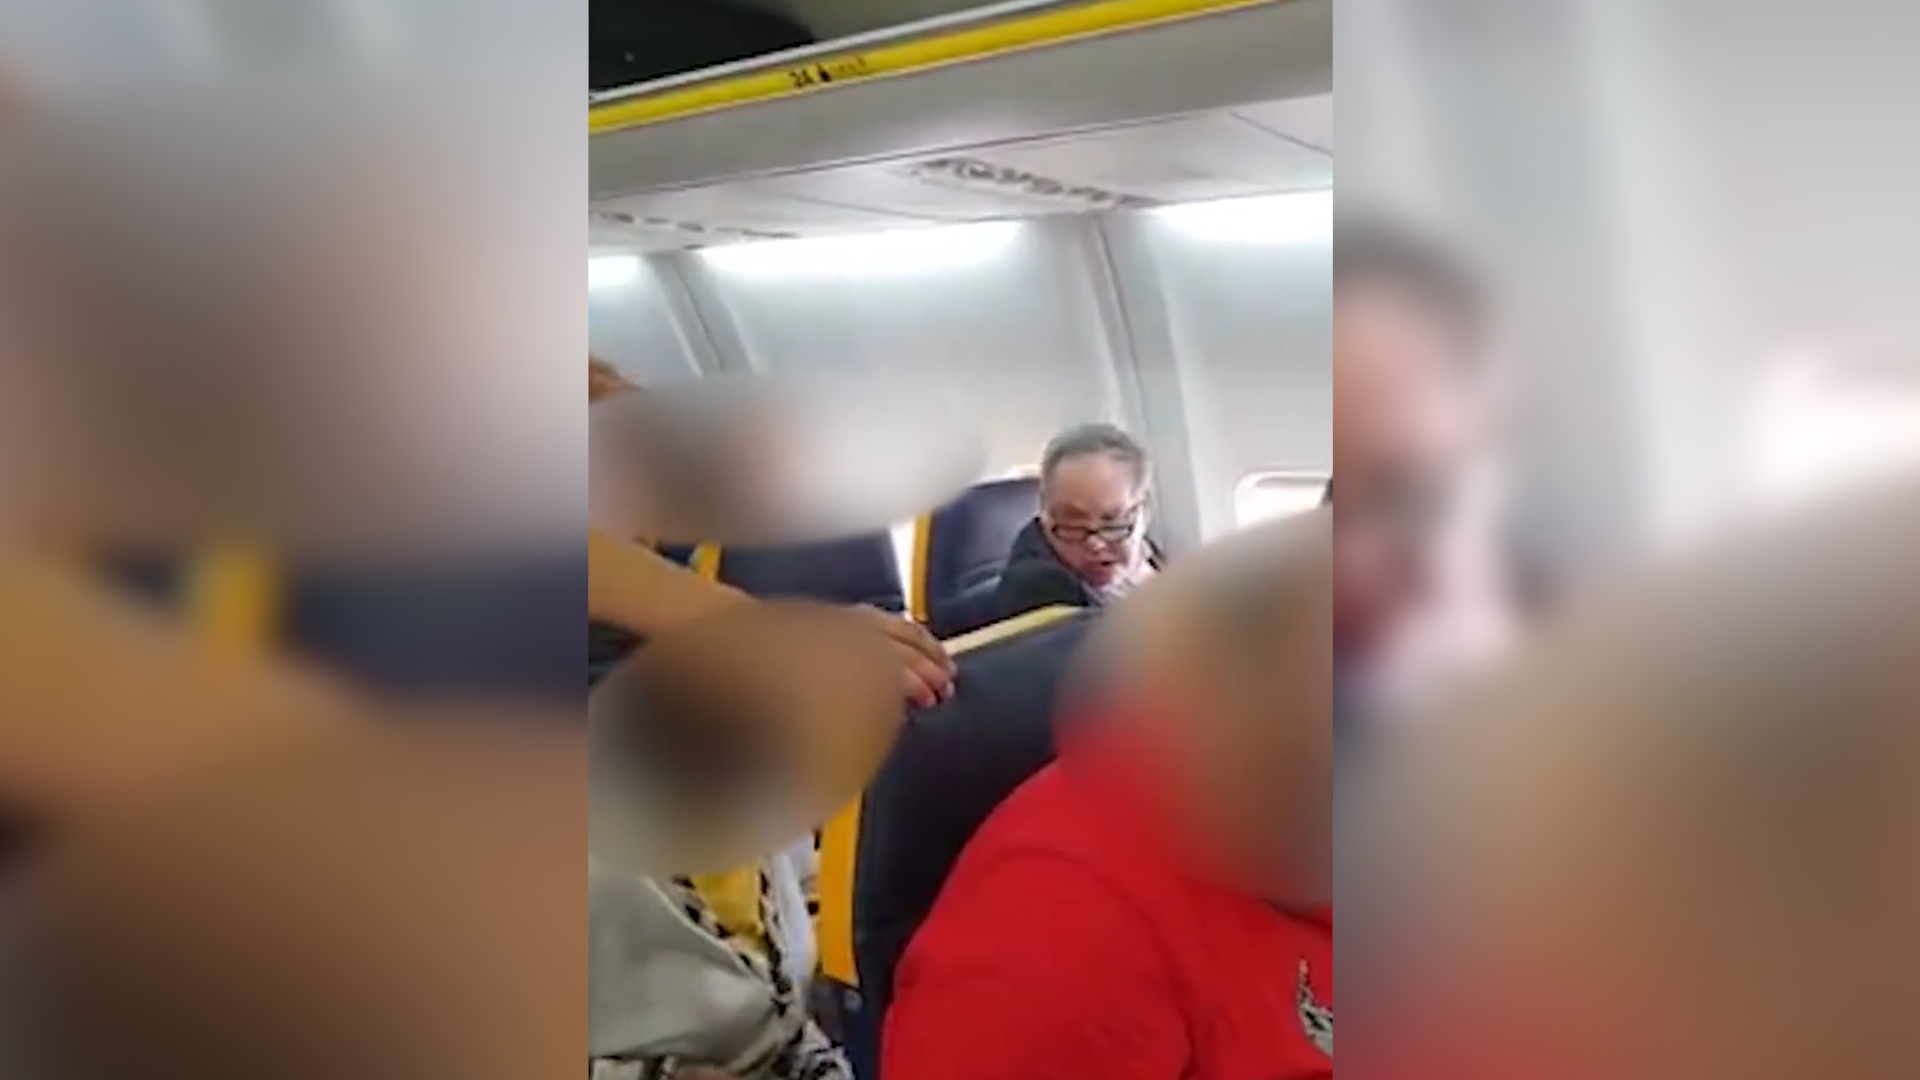 Police investigate racist incident on plane